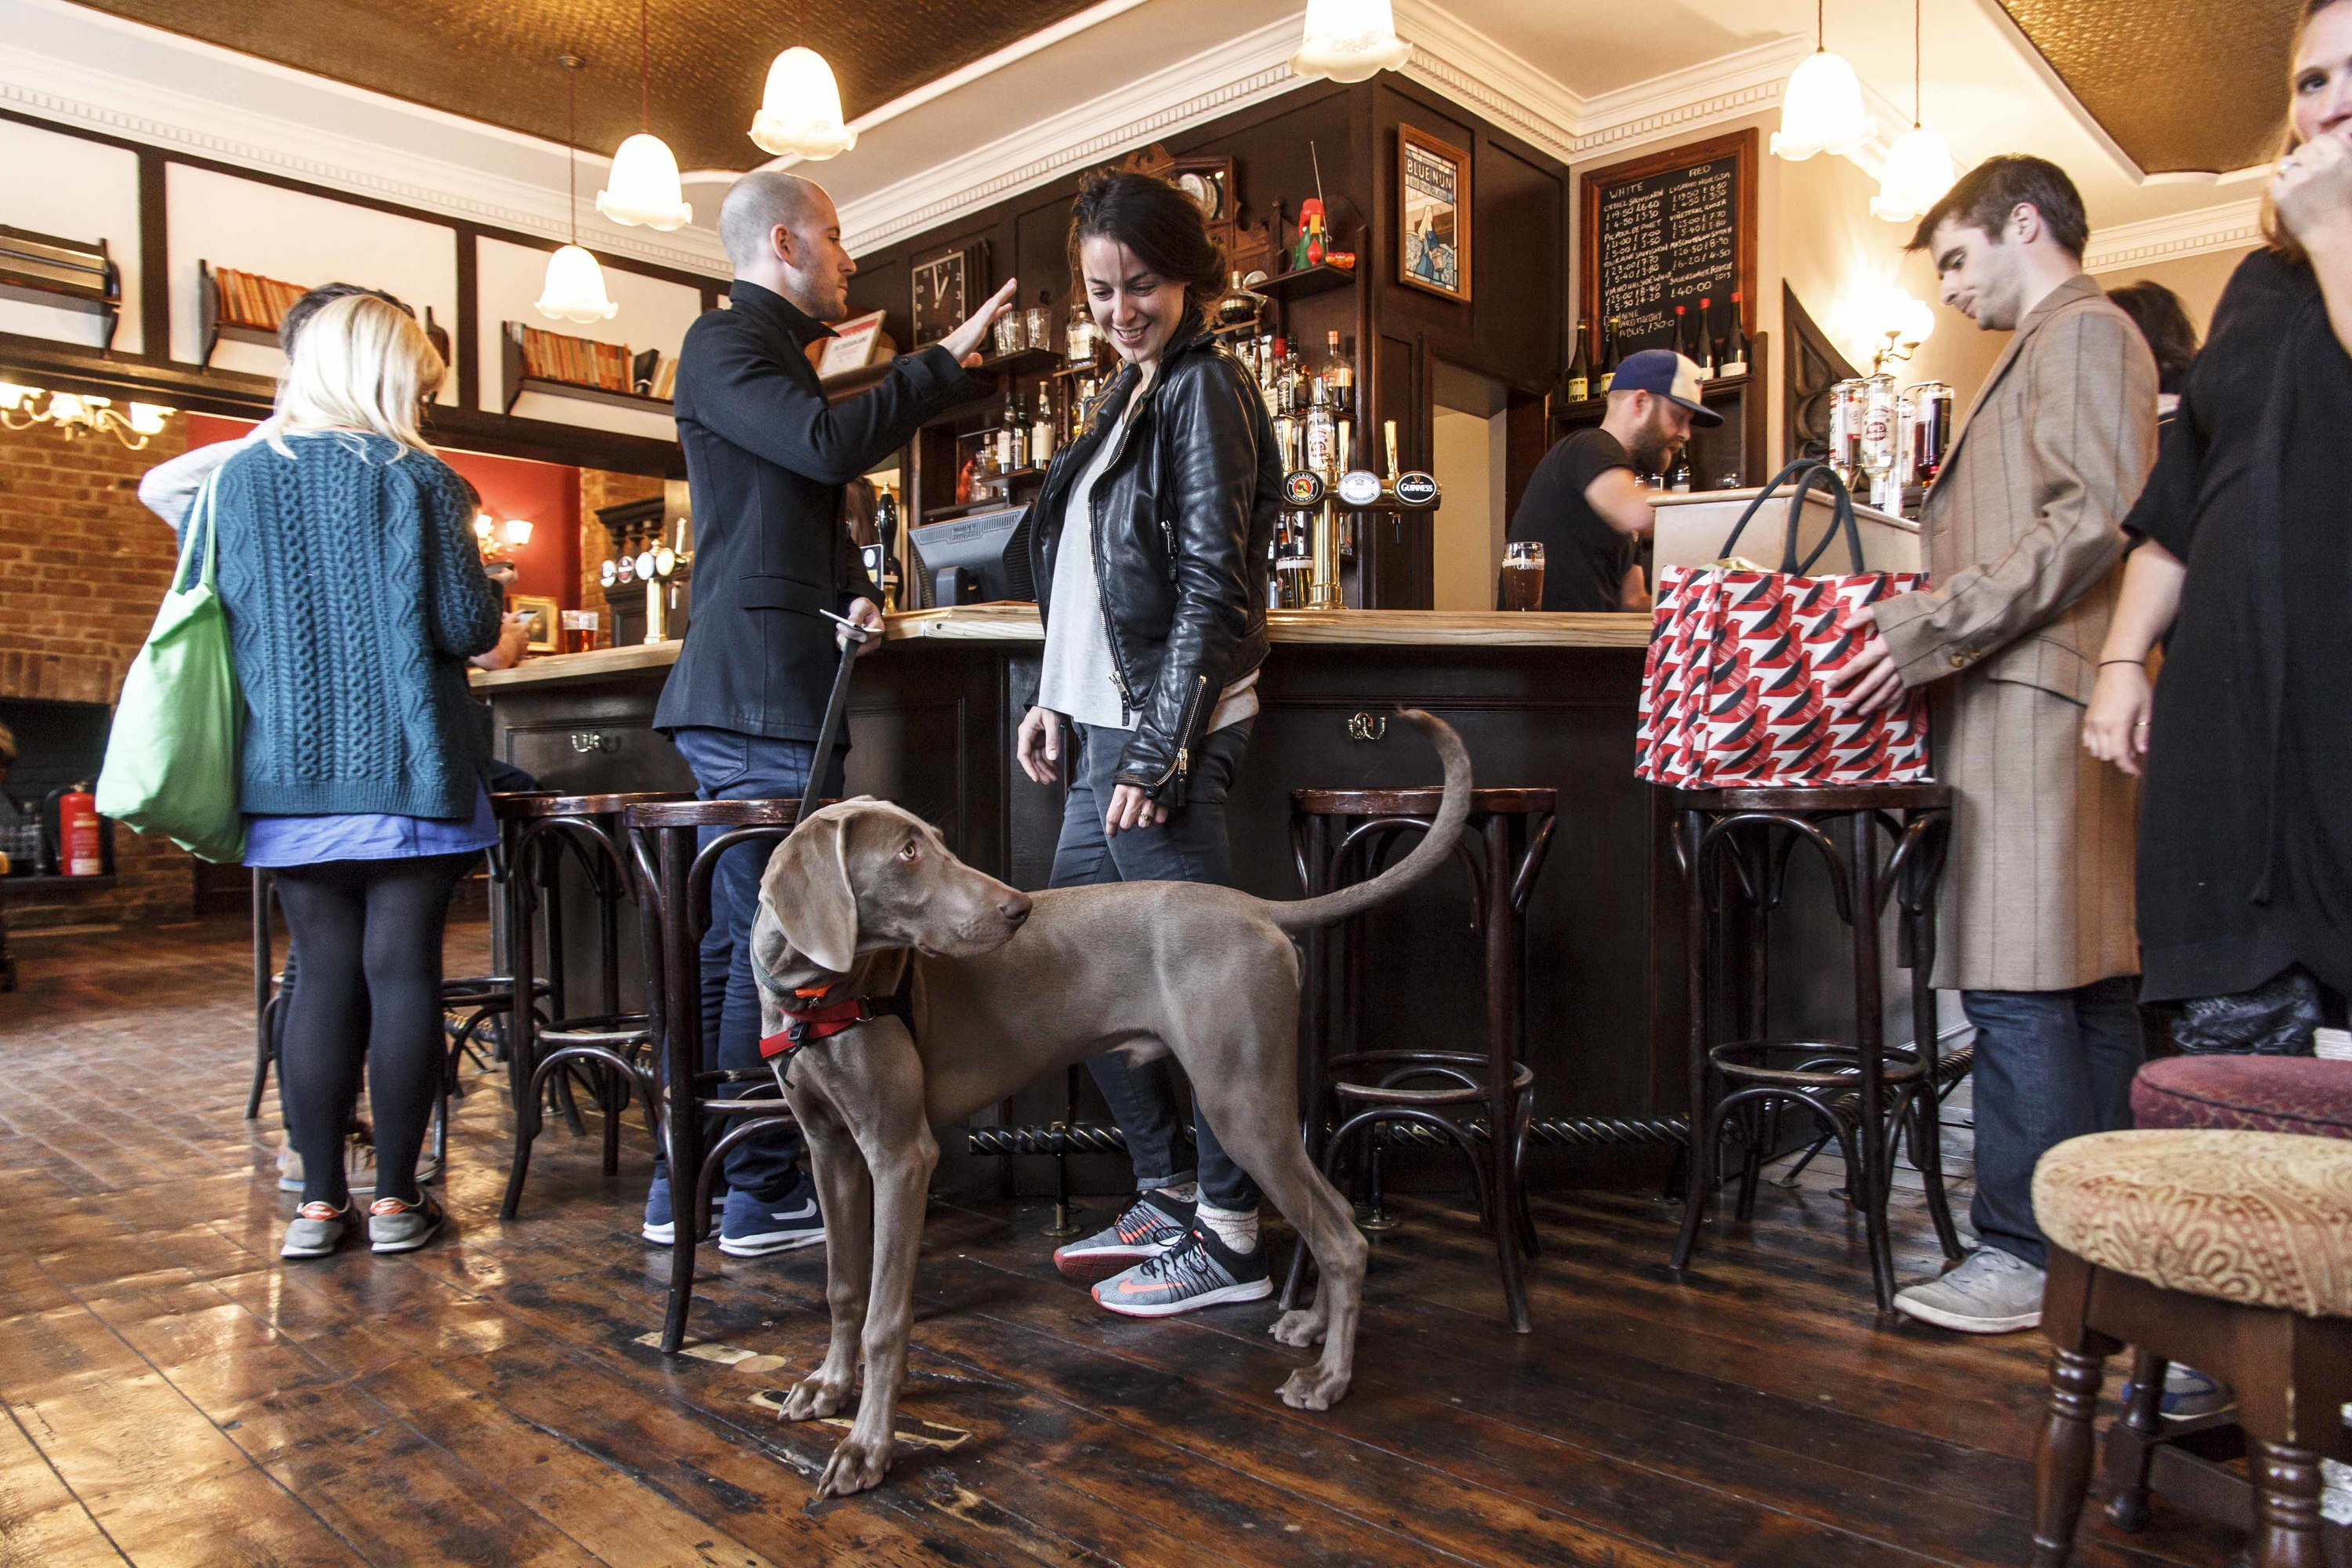 The Cosiest Pubs In London